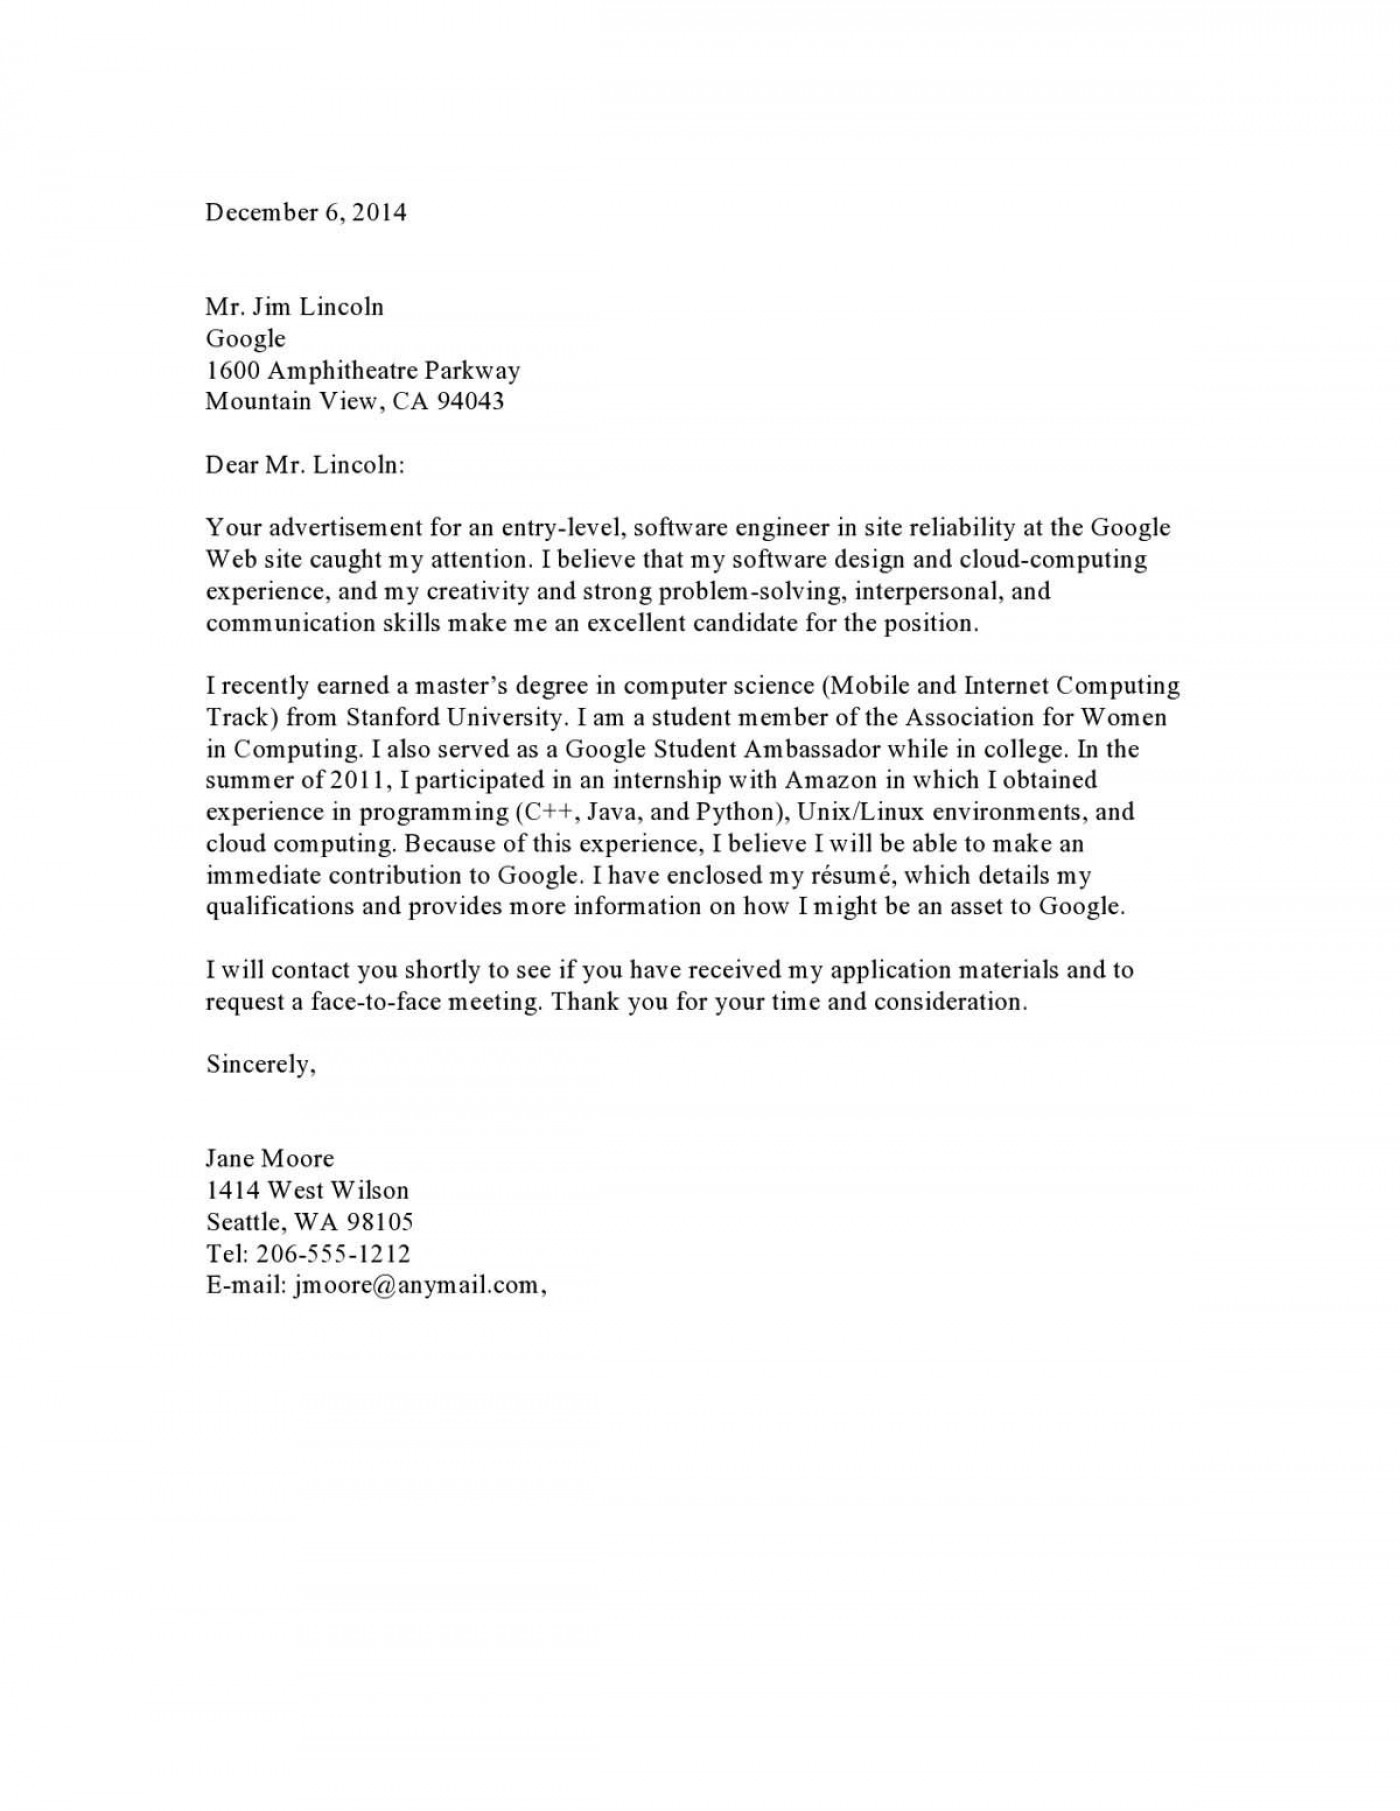 004 Rare Cover Letter Writing Sample Design  Example For Content Job Resume1400